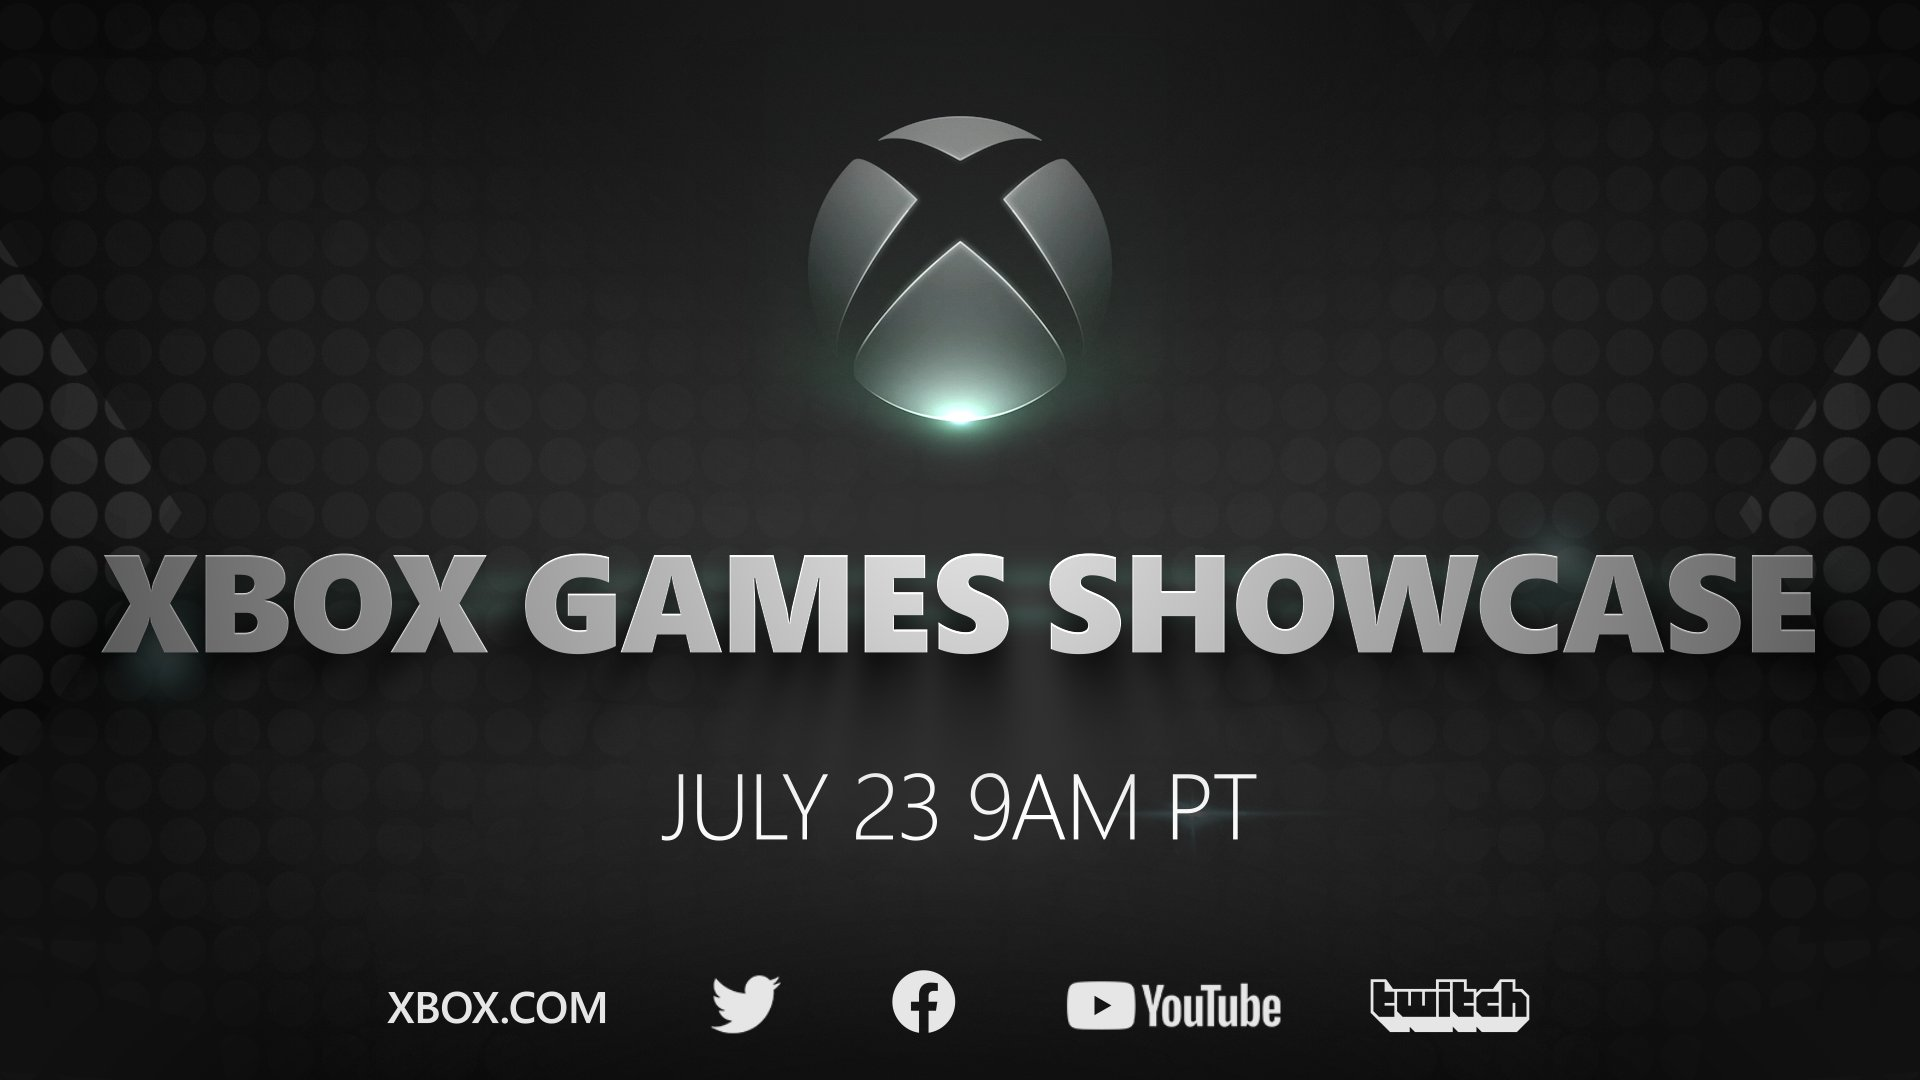 The Xbox Series X games showcase will take place July 23